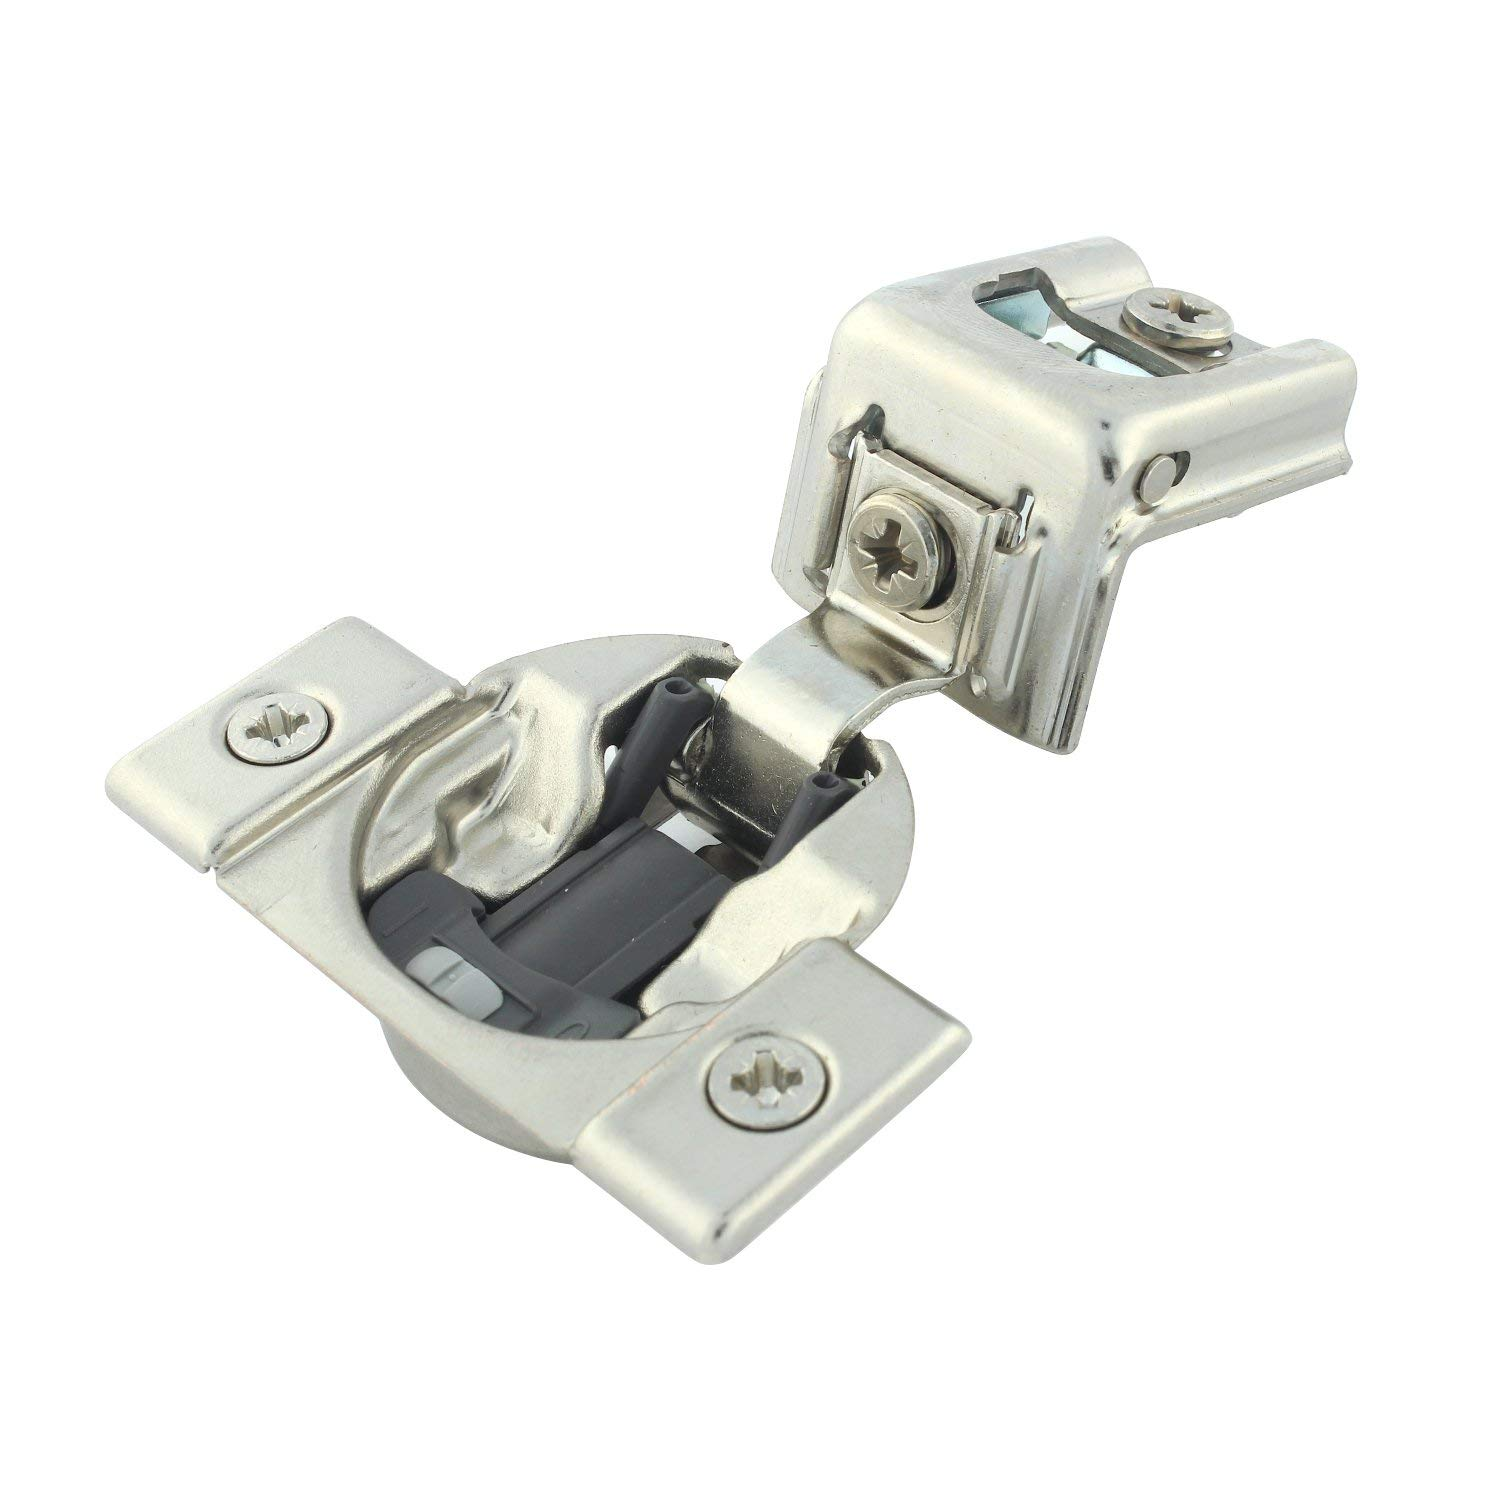 Blum Compact 39C Series otion 1-1/4-inch 110-degree Overlay Press-in Self-Closing Cabinet Hinge (Case of 20) by Blum (Image #3)